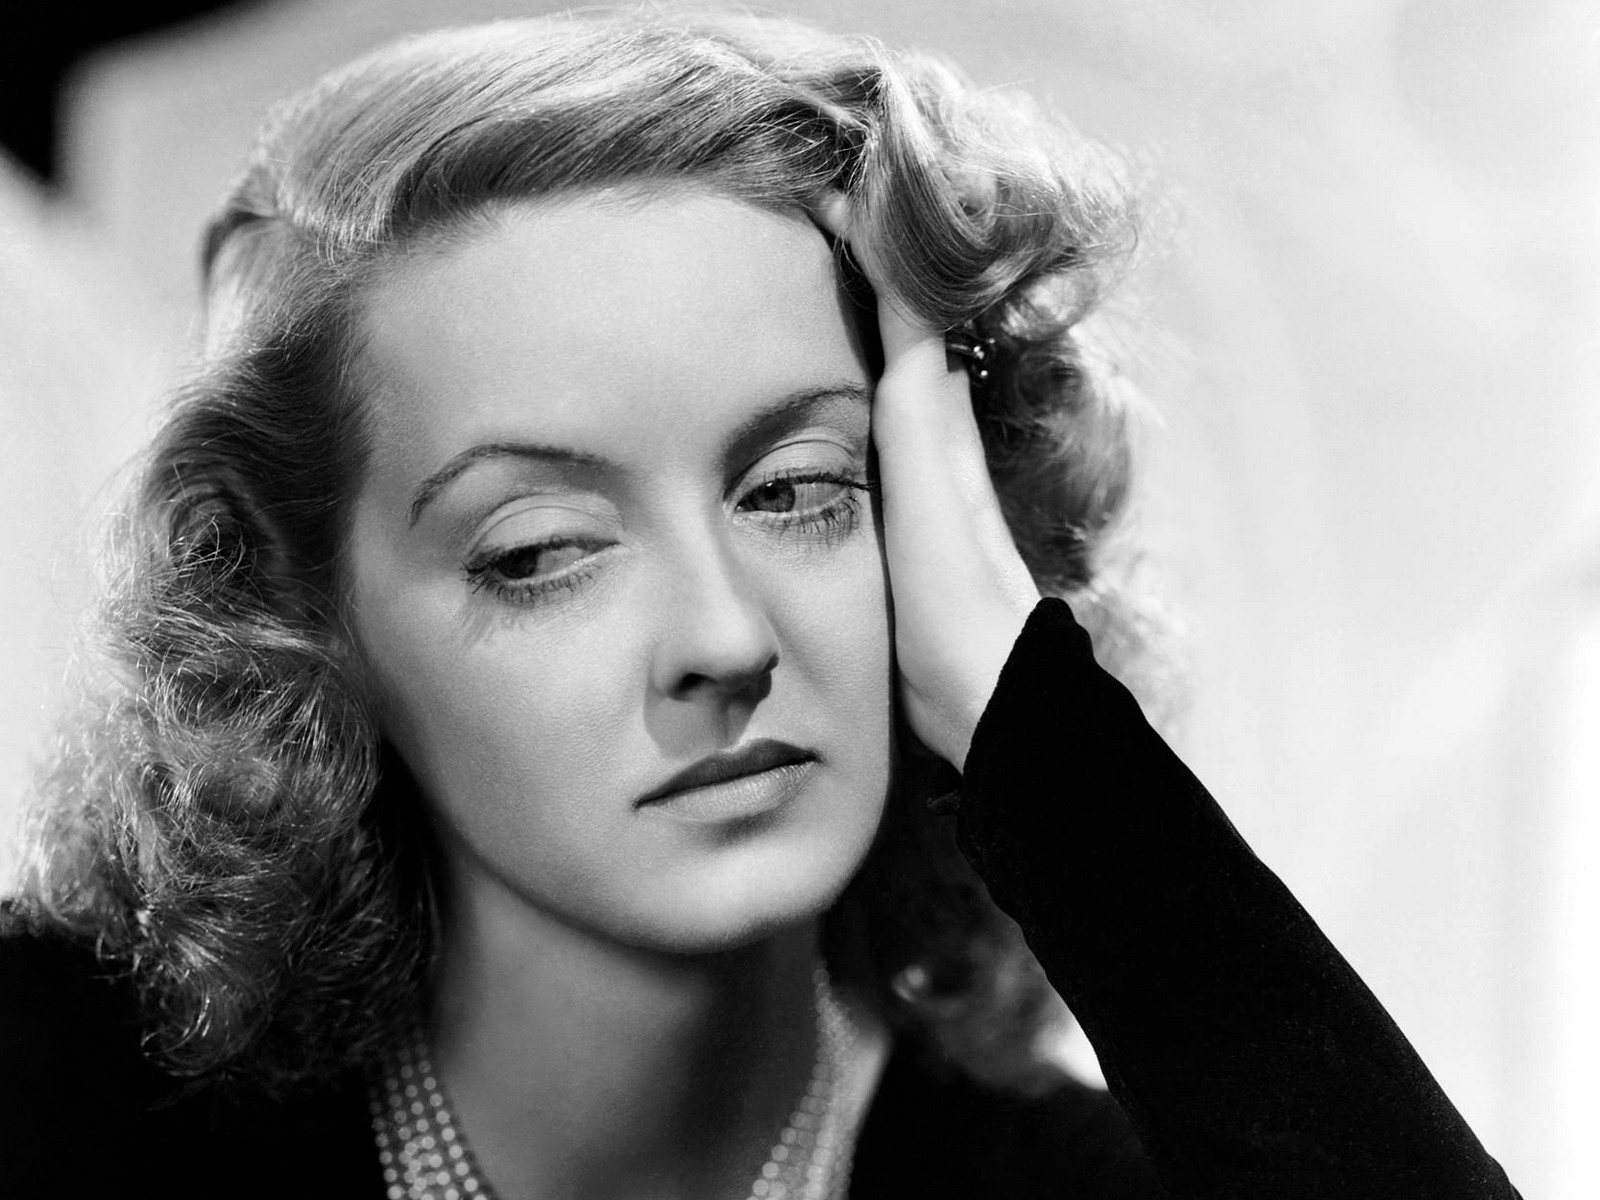 bette davis 1908 in Pop Culture, AKA The Last Time the Chicago Cubs Won a World Series Title